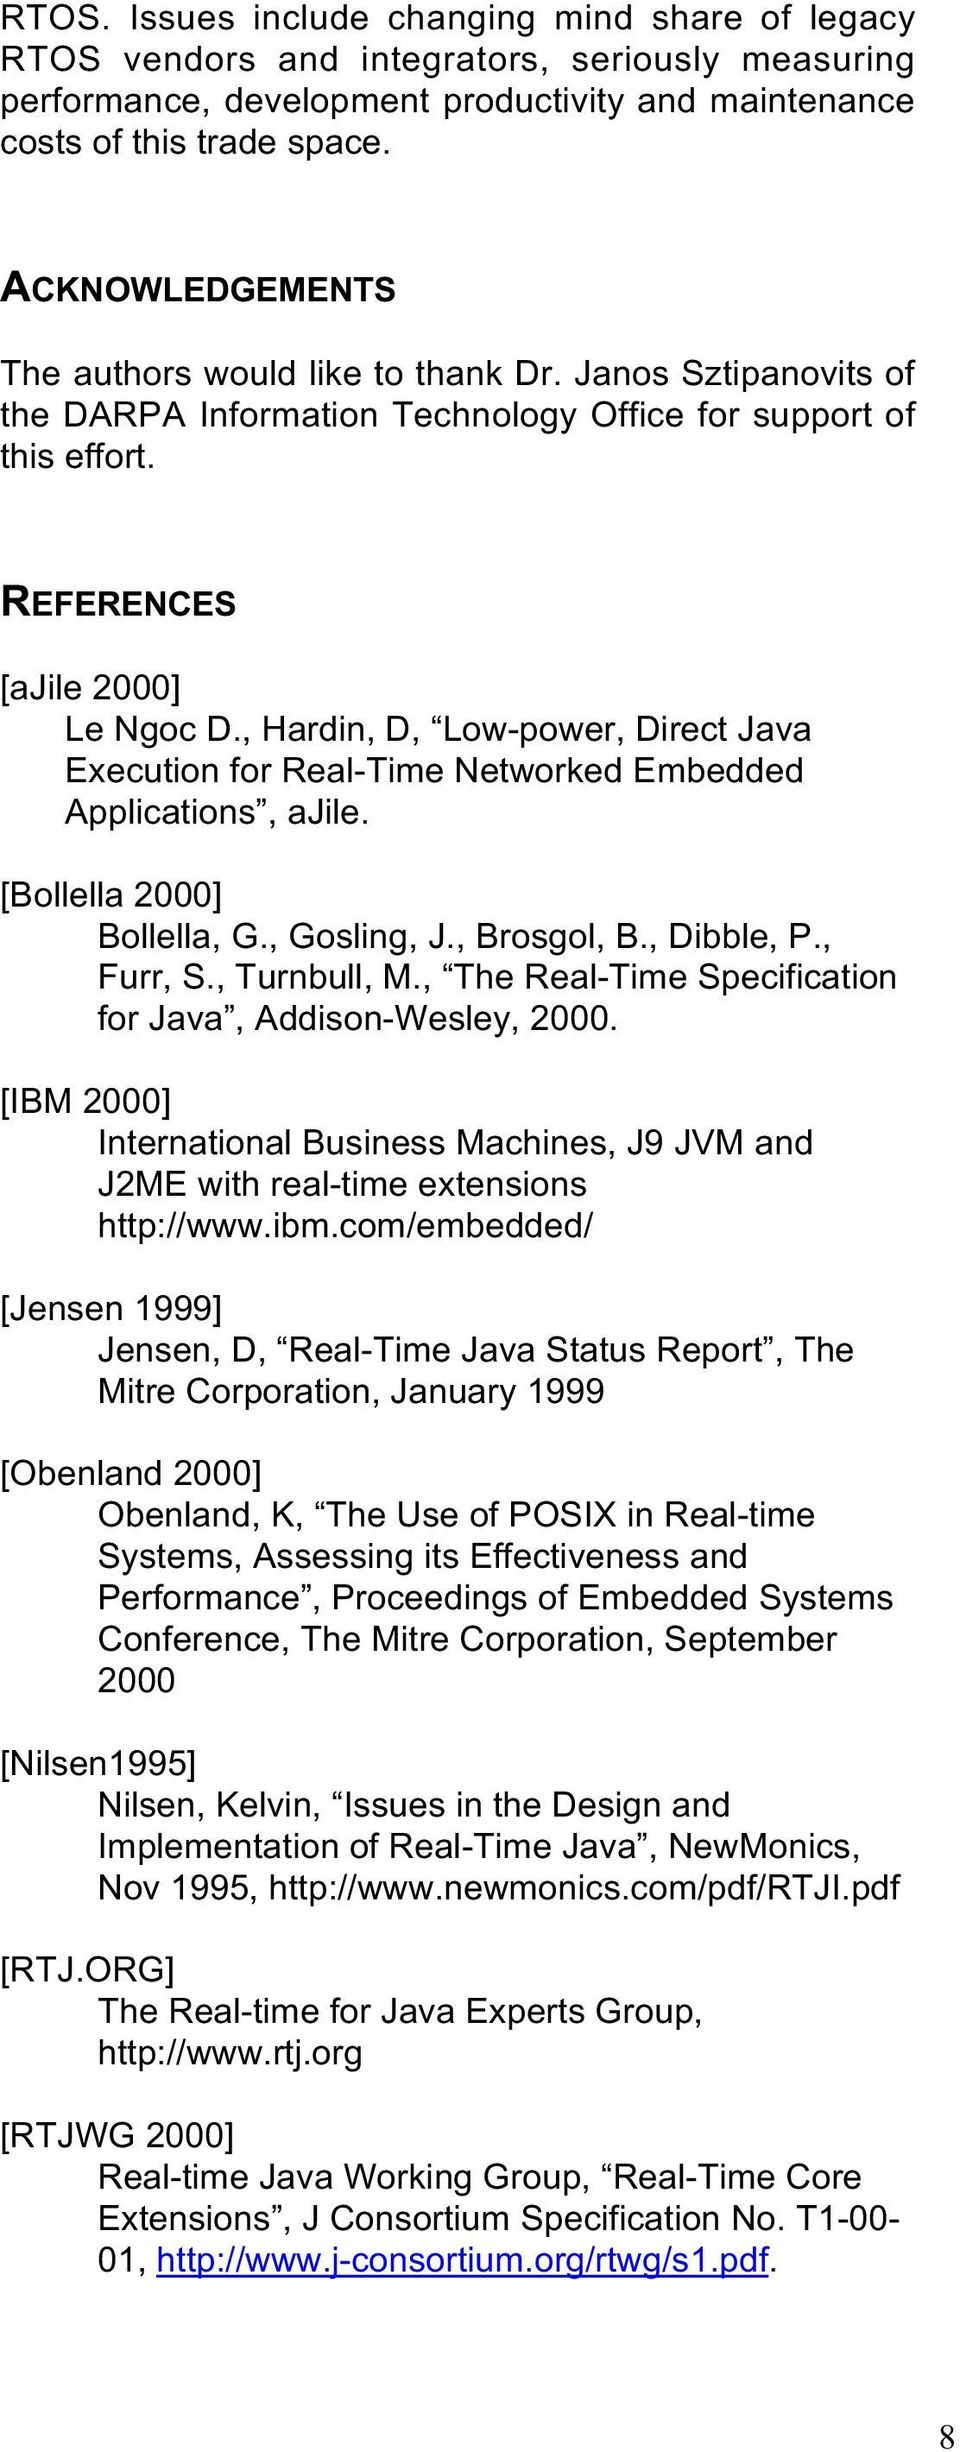 Real-Time Java Commercial Product Assessment - PDF